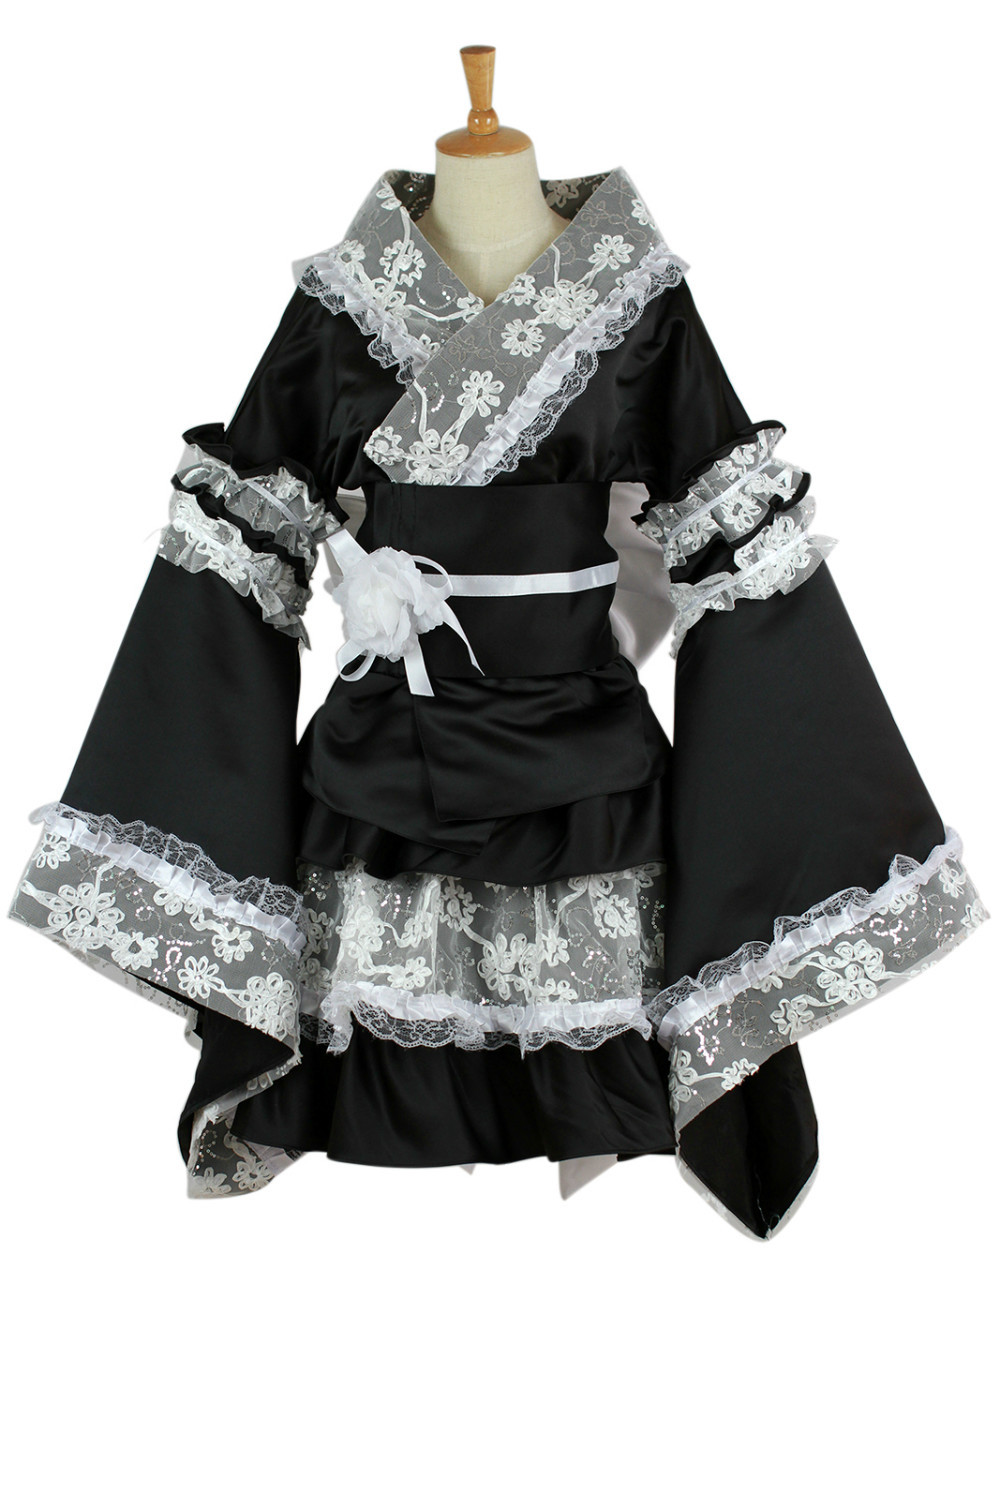 maid cosplay costume for women Anime clothes lace kimono Lolita dress girls summer party dress medieval gothic dresses